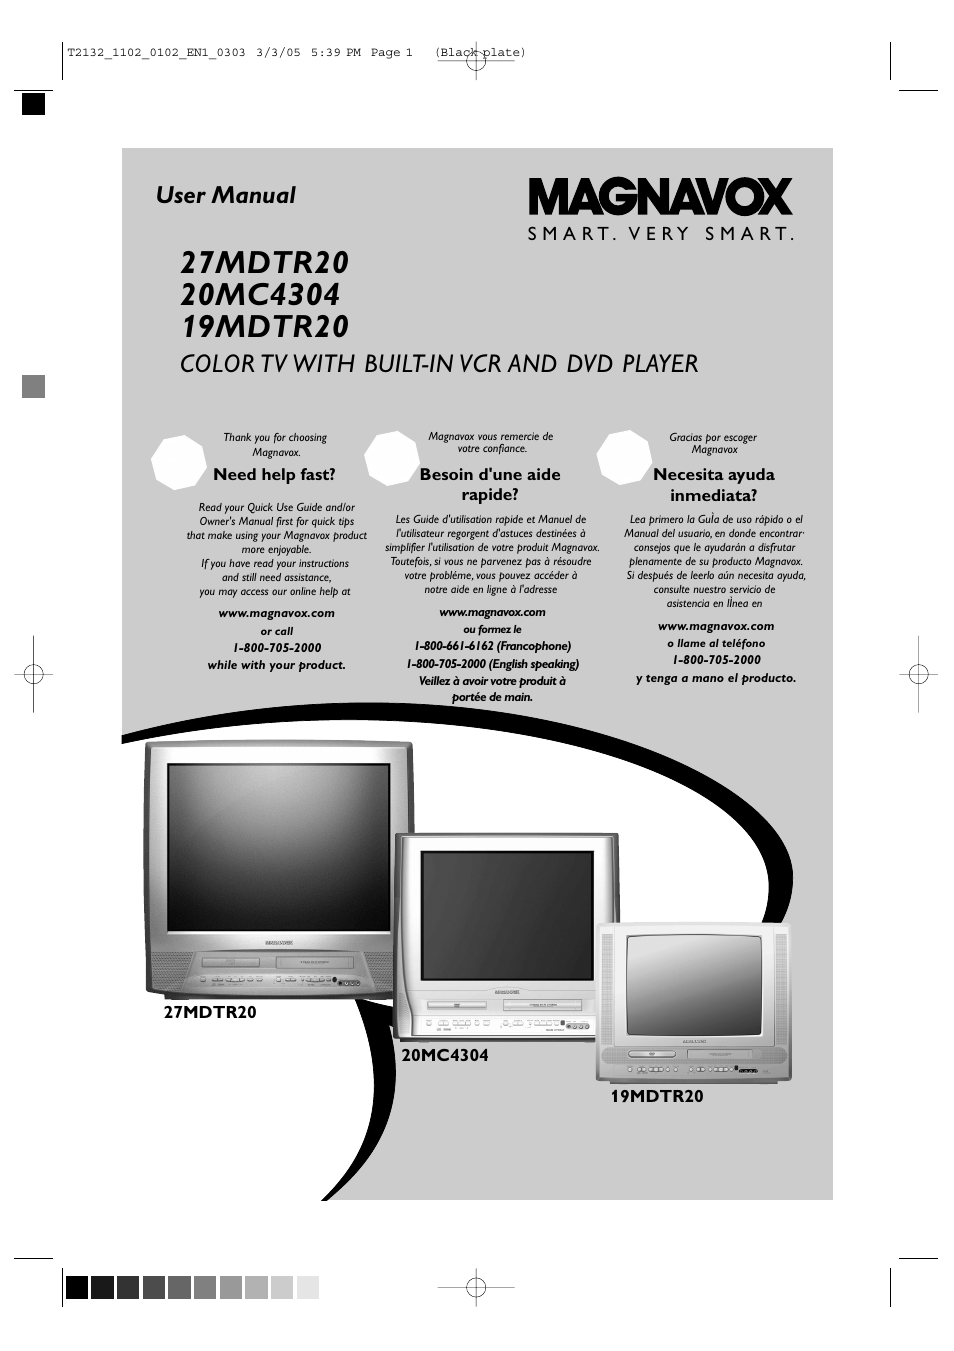 philips t2132 user manual 84 pages also for 19mdtr20 magnavox rh manualsdir com philips dvd video player manual philips vcr dvd recorder manual